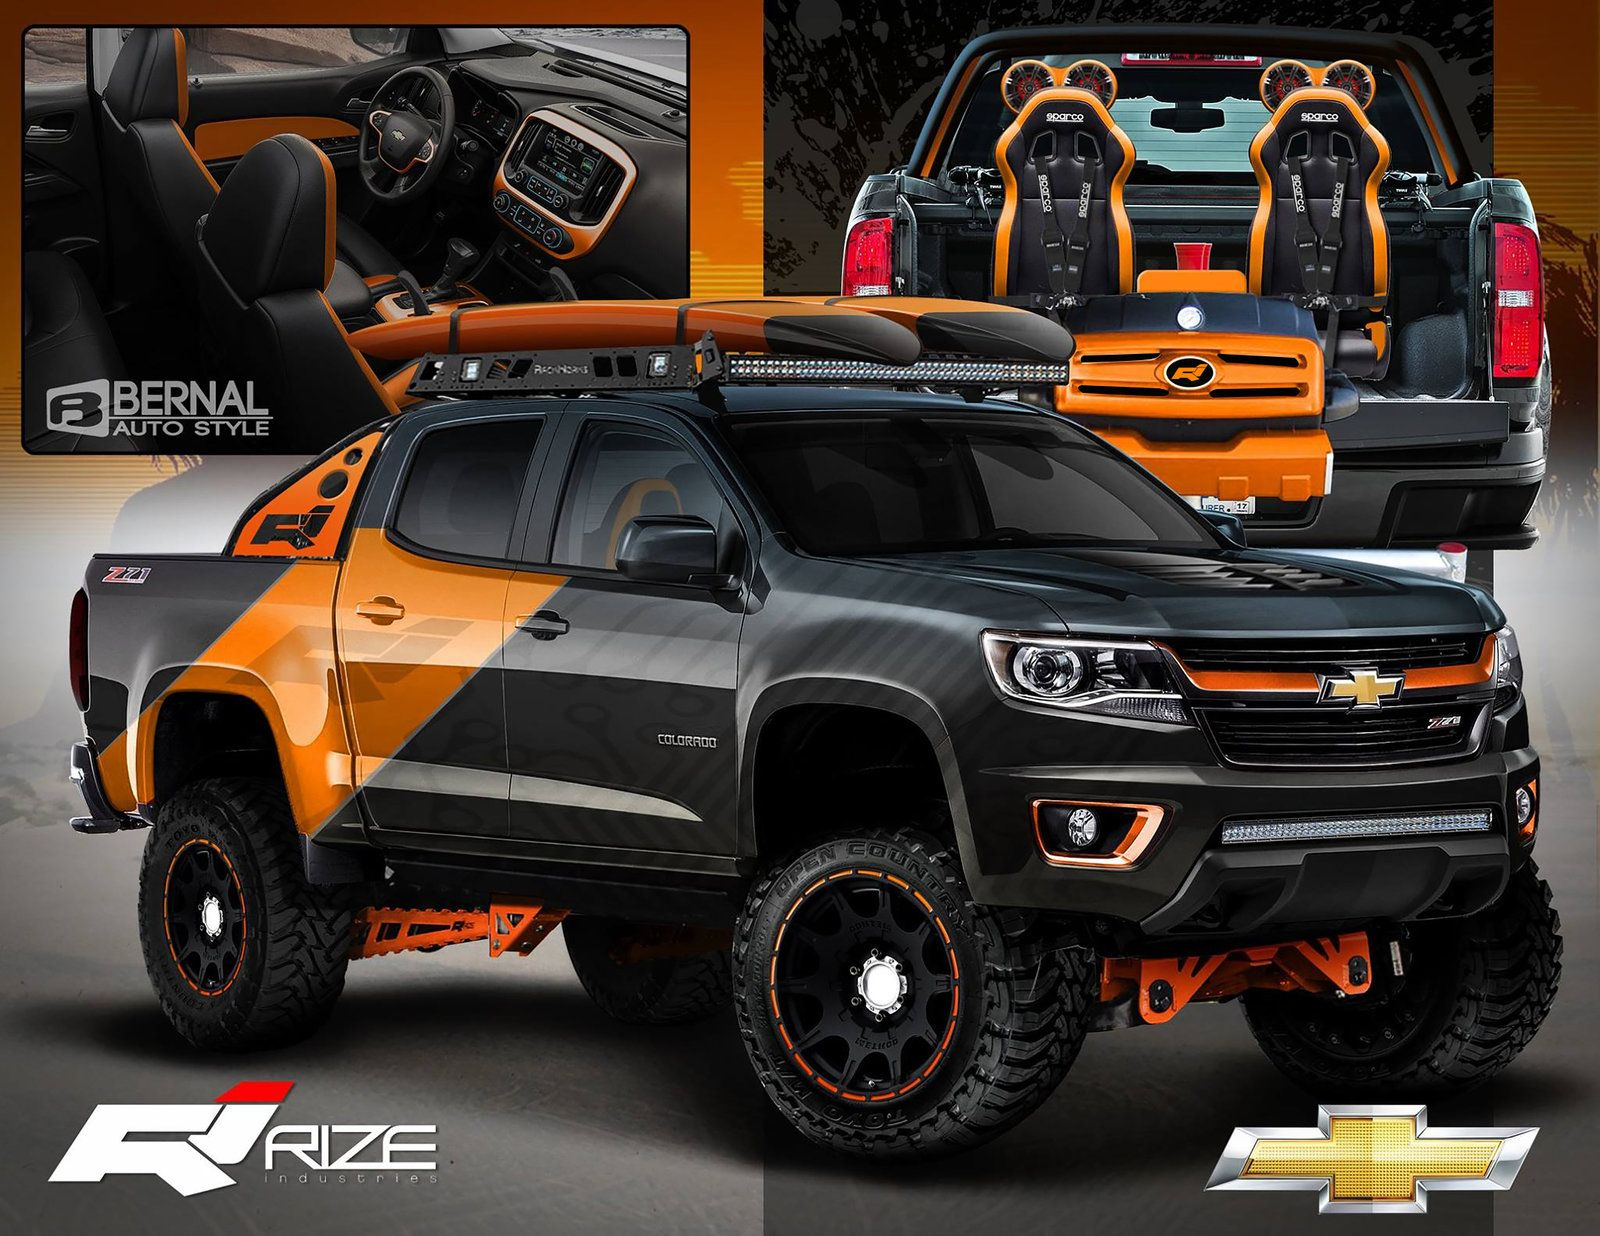 Rize Industries 2015 Chevy Colorado Sema Proposal Matt Bernal